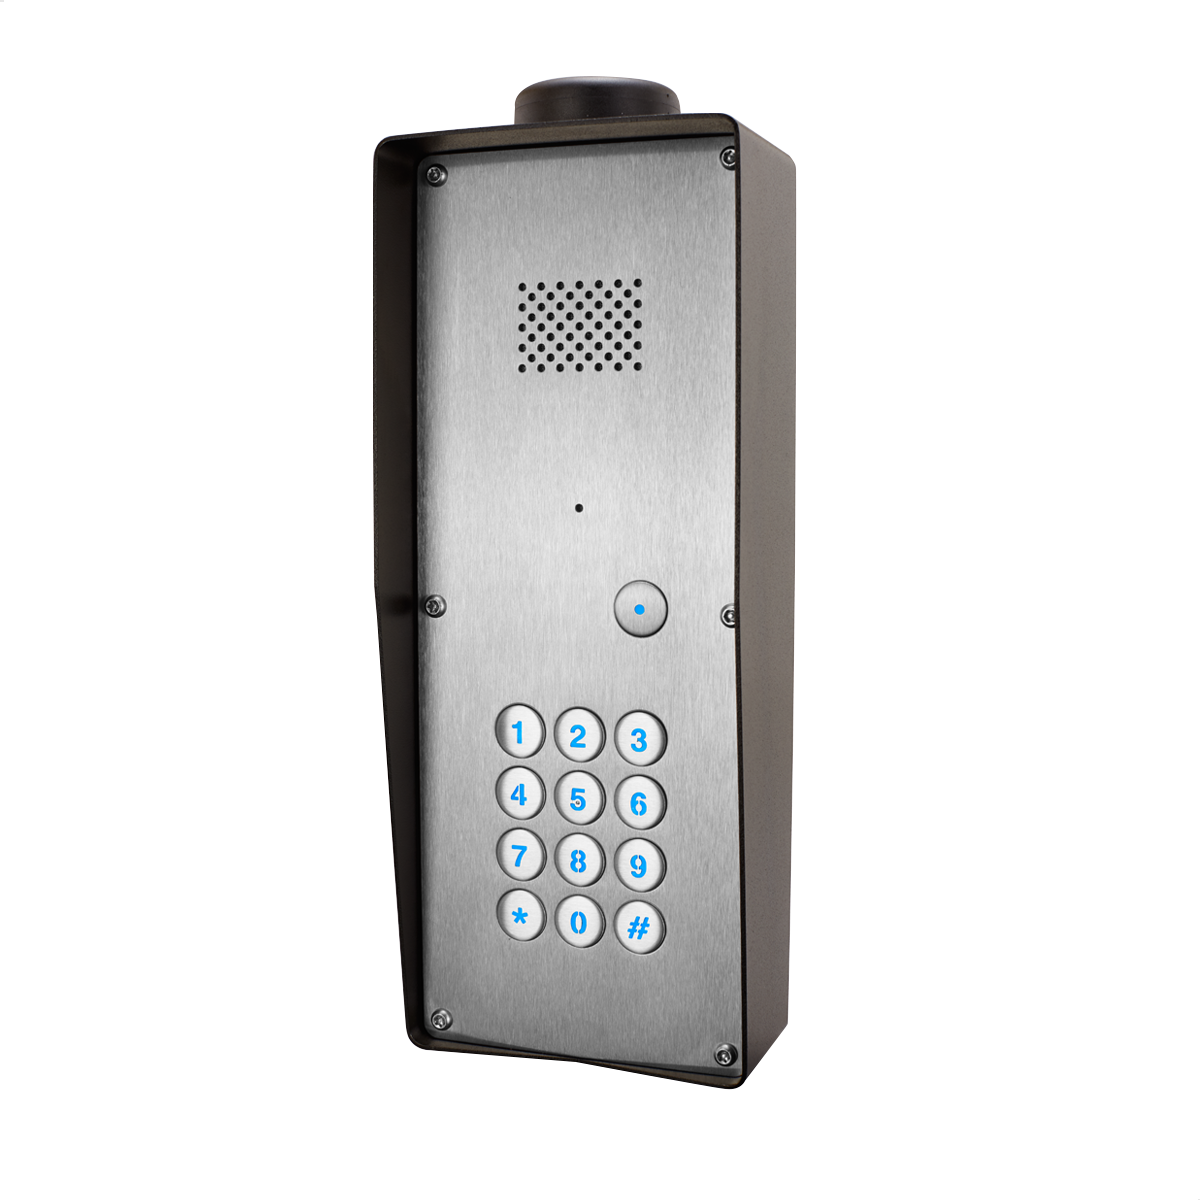 GSM Intercom with keyless entry (3G) Anti-vandal 1 way for 1 Property